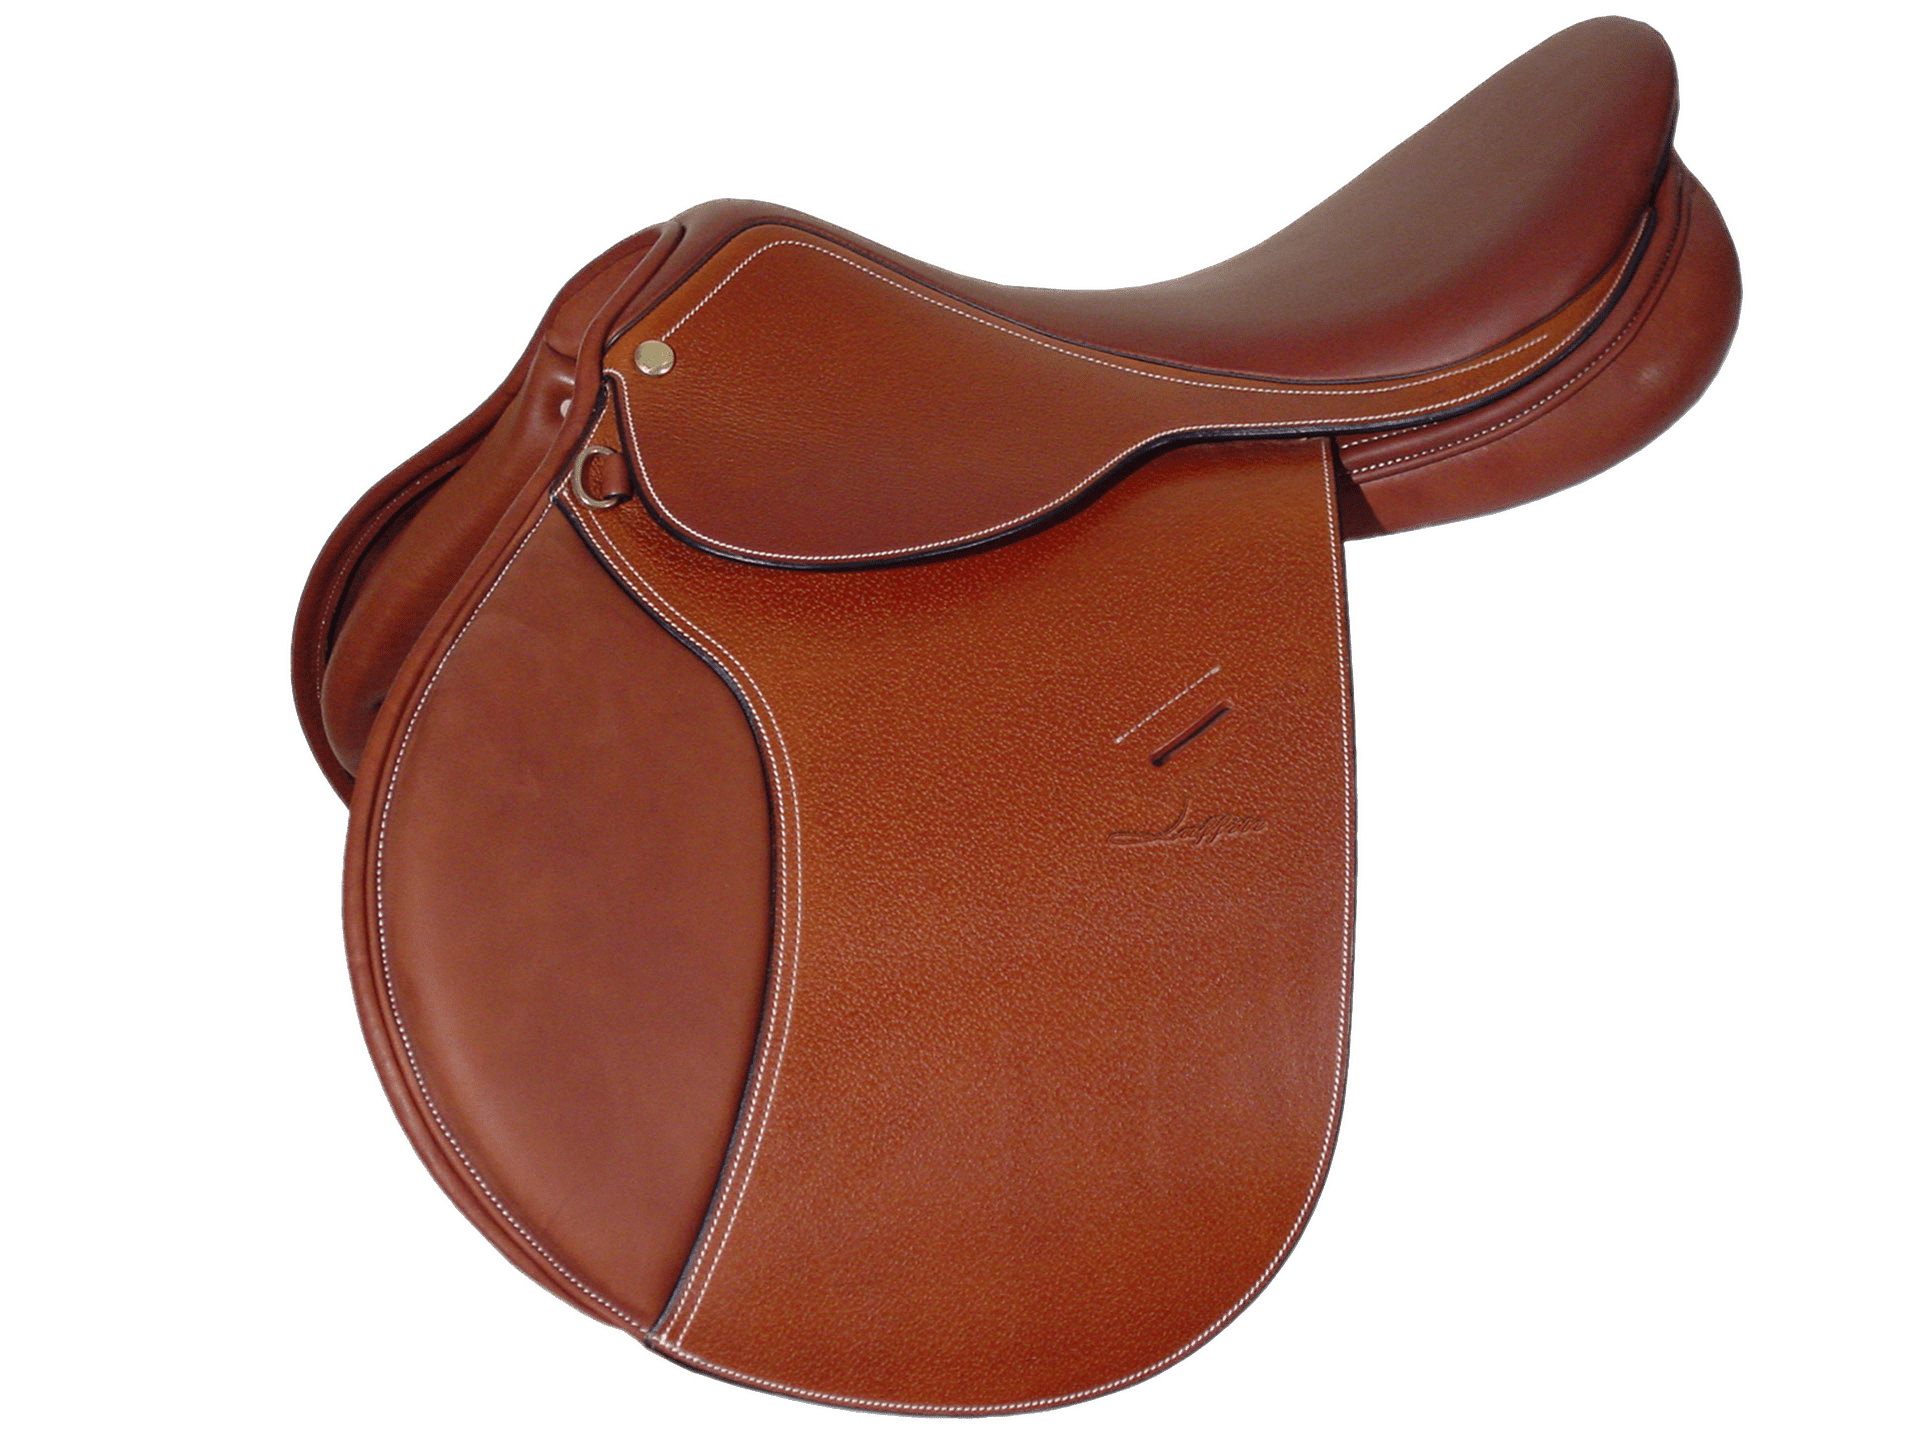 Horse saddle png. English transparent stickpng objects